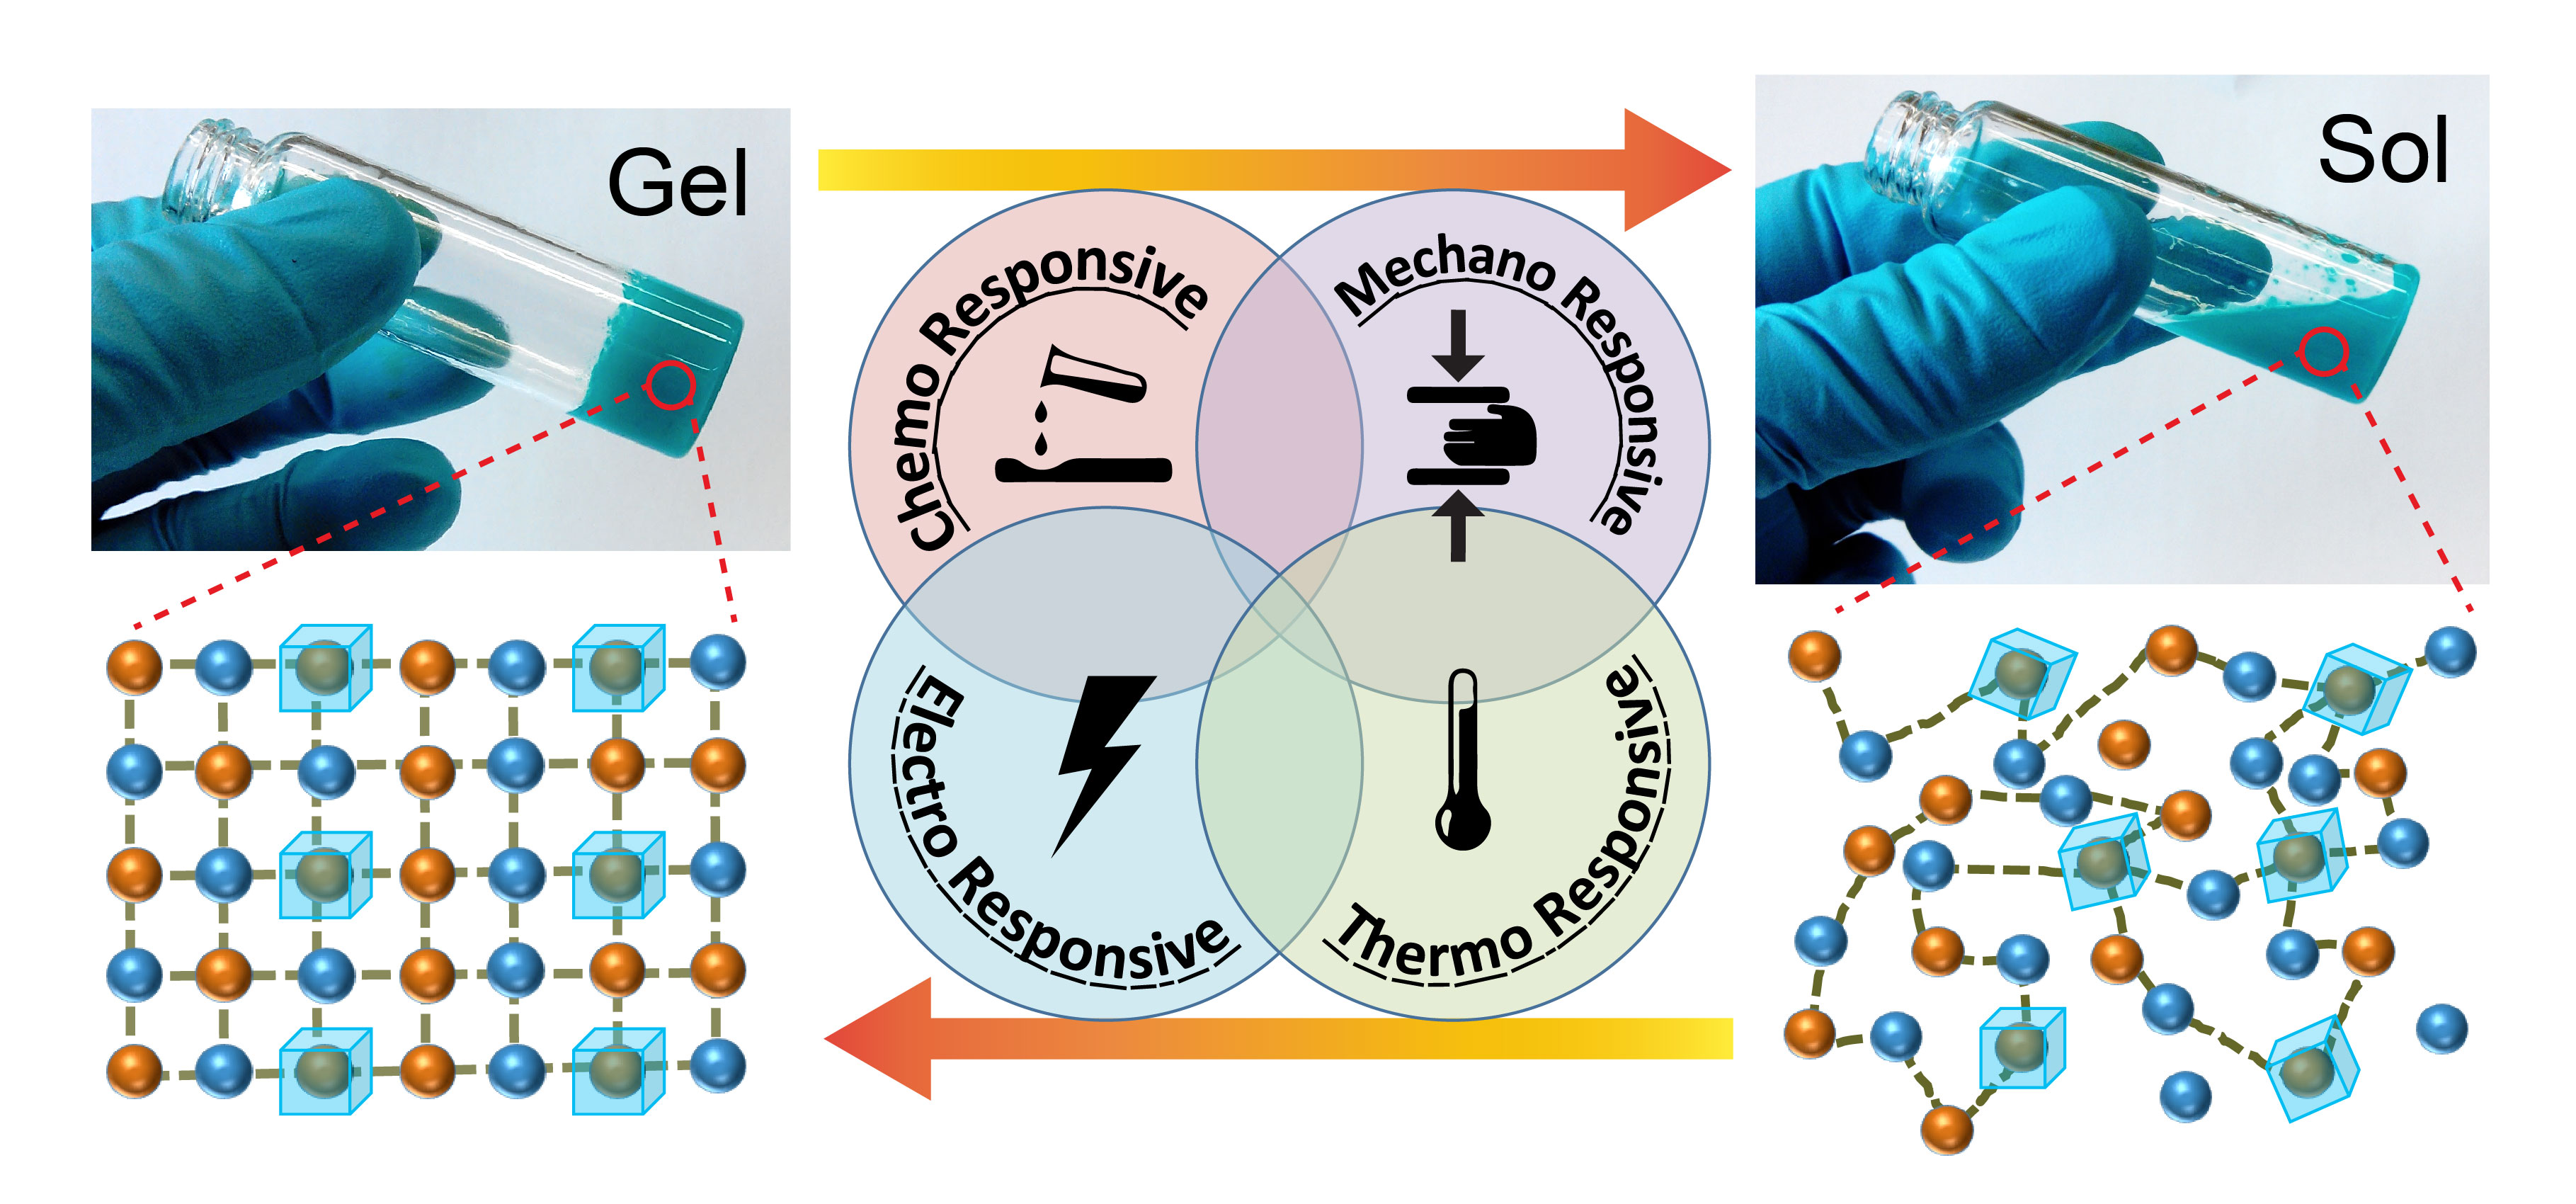 Reversible conversion of a hybrid gel subject to physical and chemical stimuli